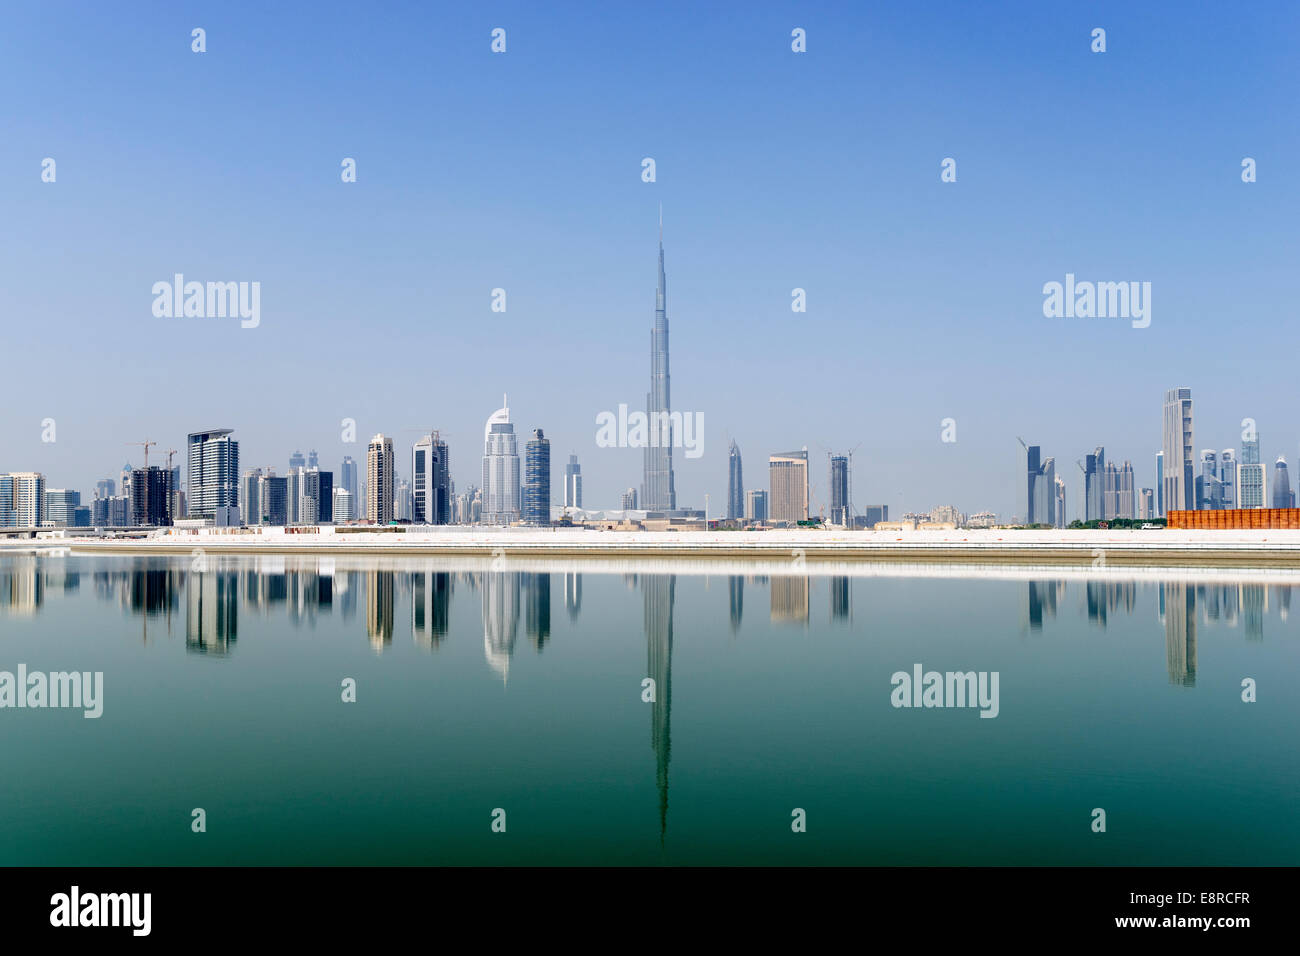 View across The Creek towards skyline of Dubai and Burj Khalifa at Business Bay in United Arab Emirates - Stock Image